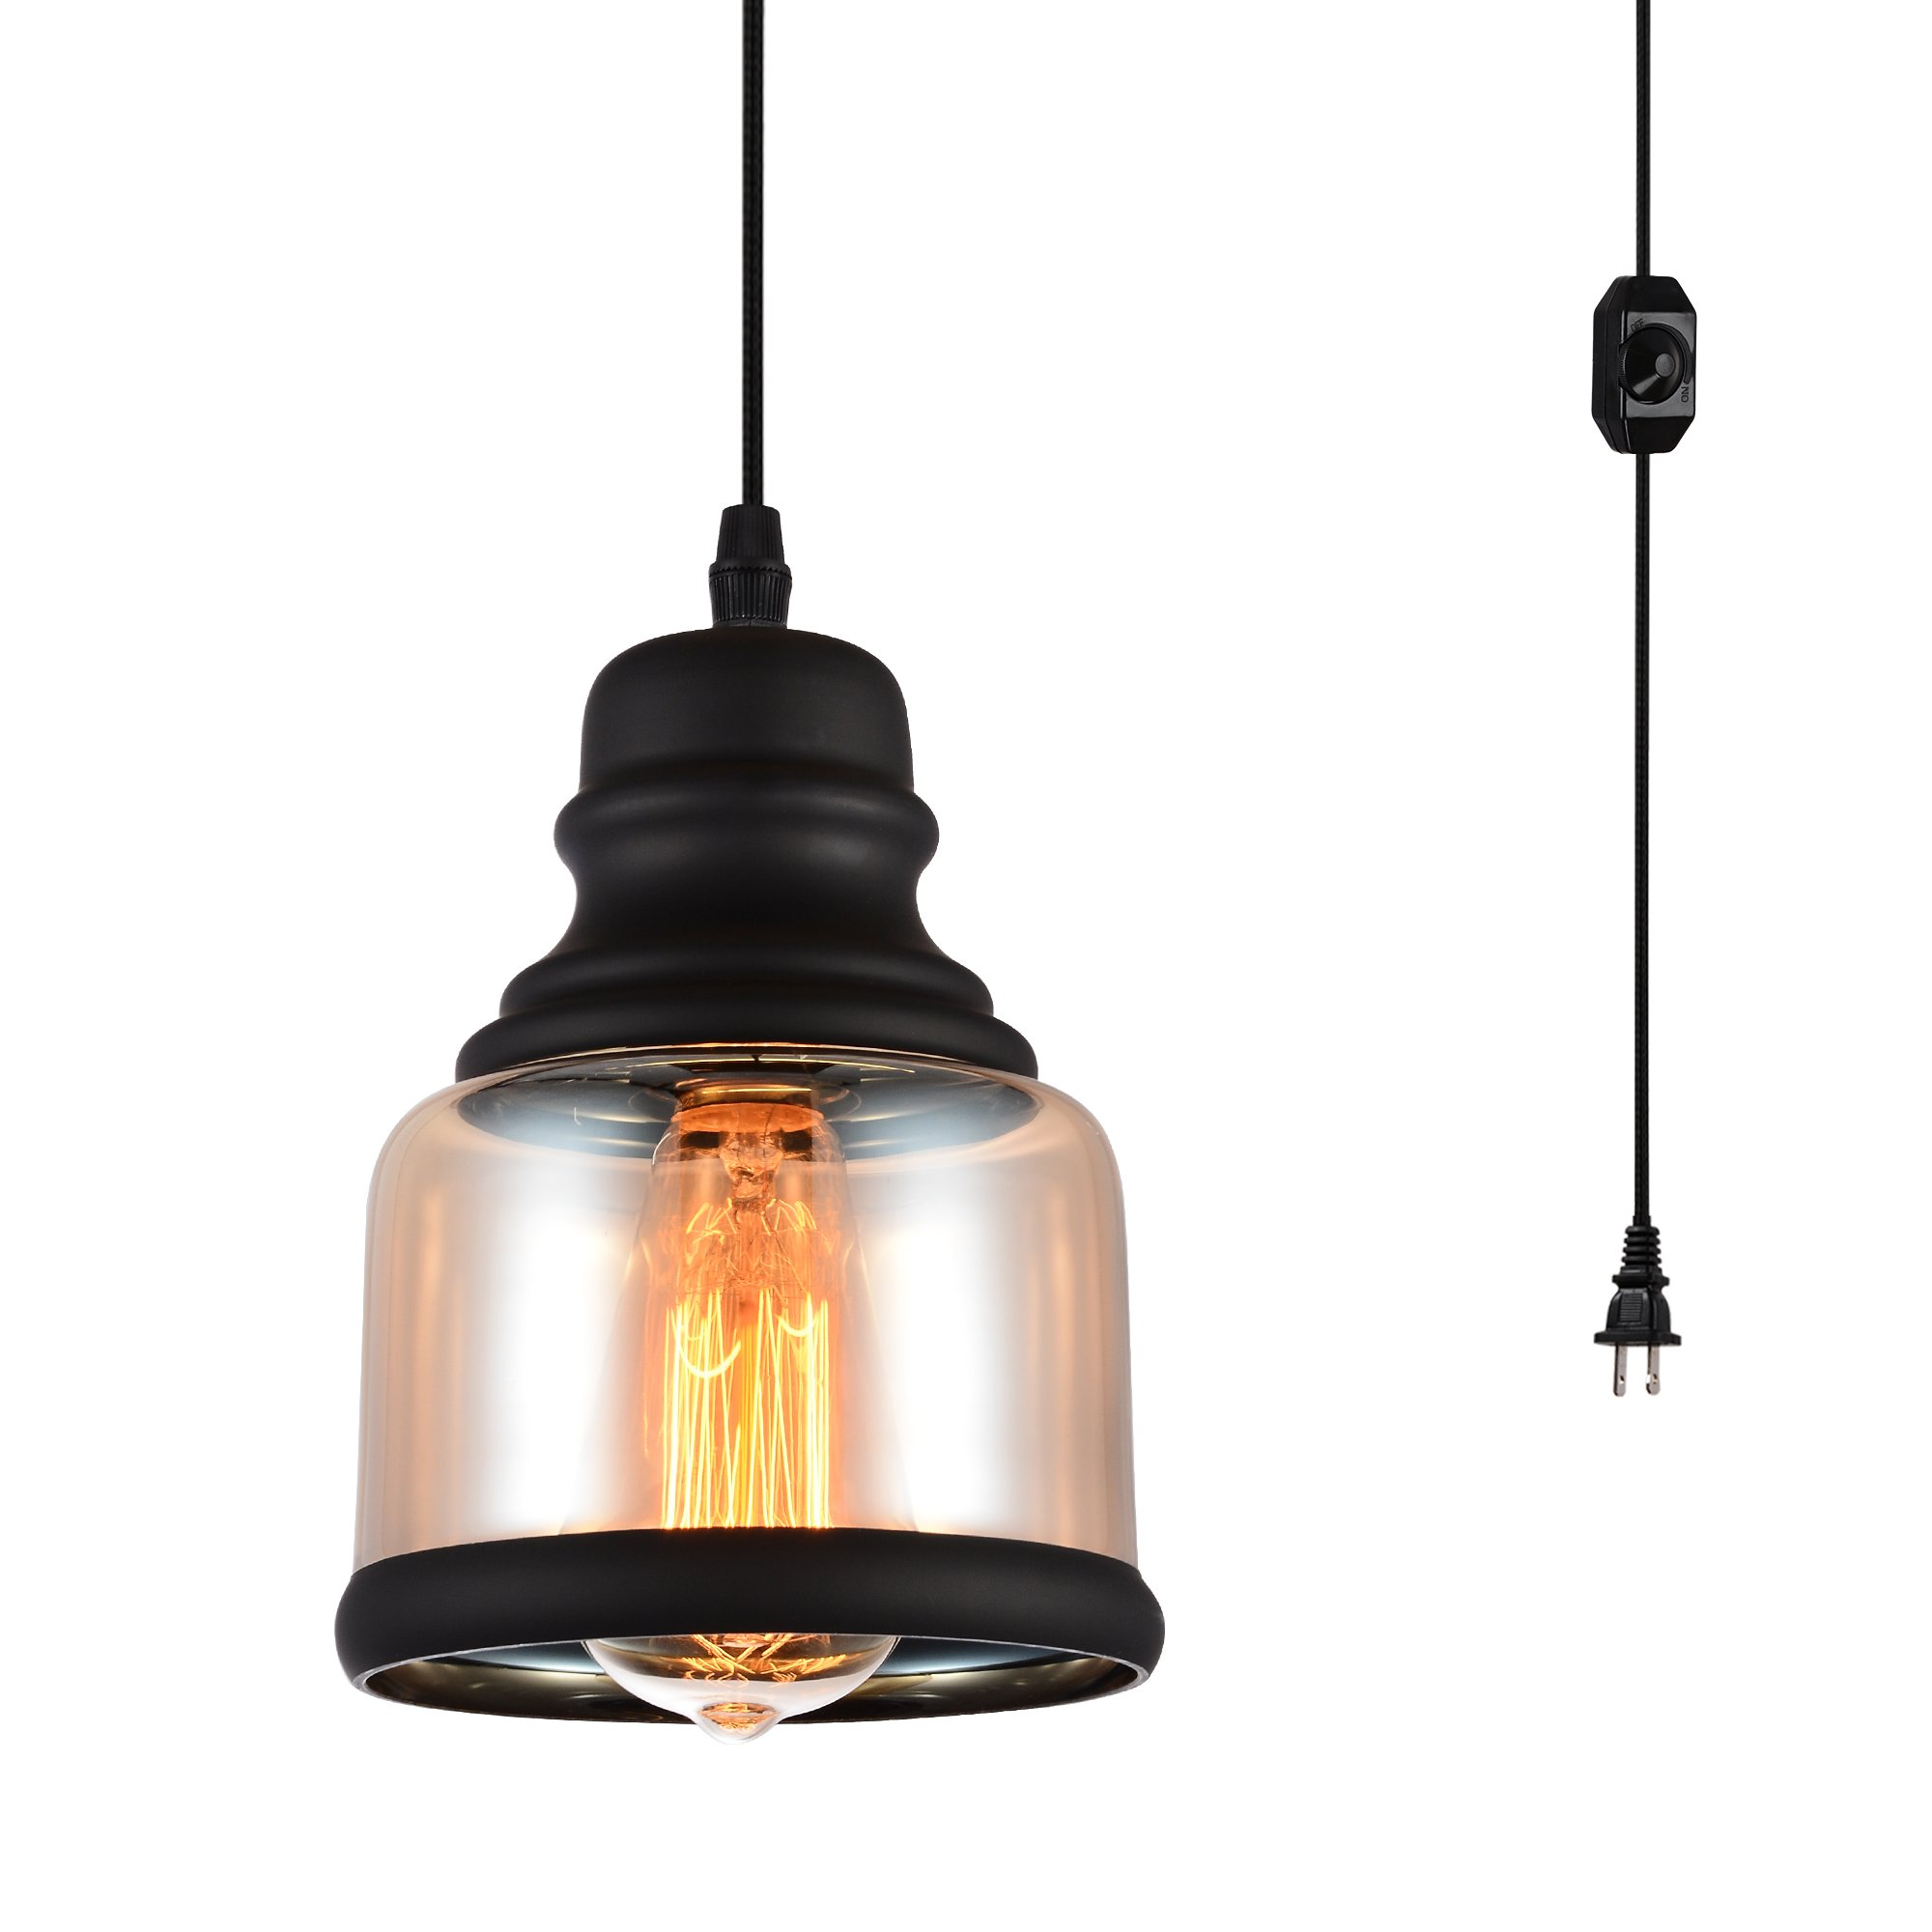 HMVPL Glass Hanging Lights with Plug in Cord and On/Off Dimmer Switch, Updated Industrial Edison Vintage Swag Pendant Lamps for Kitchen Island or Dining Room -Black Jar